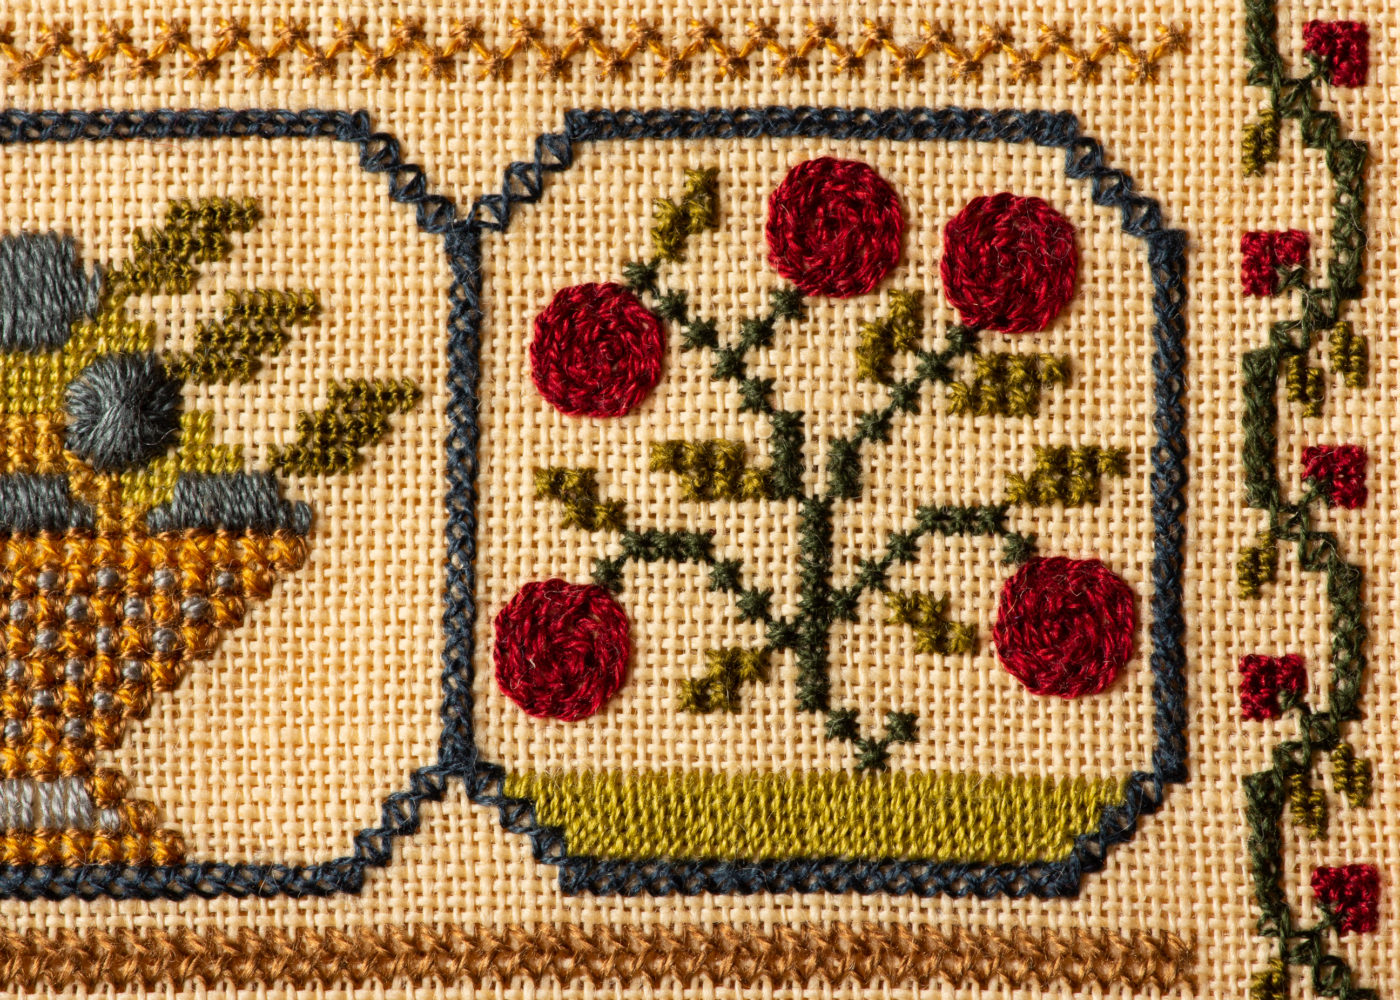 """HAND PAINTED WOODEN FRAME for CROSS STITCH 4/"""" x 5/"""" Design Area Leather Cord RED"""